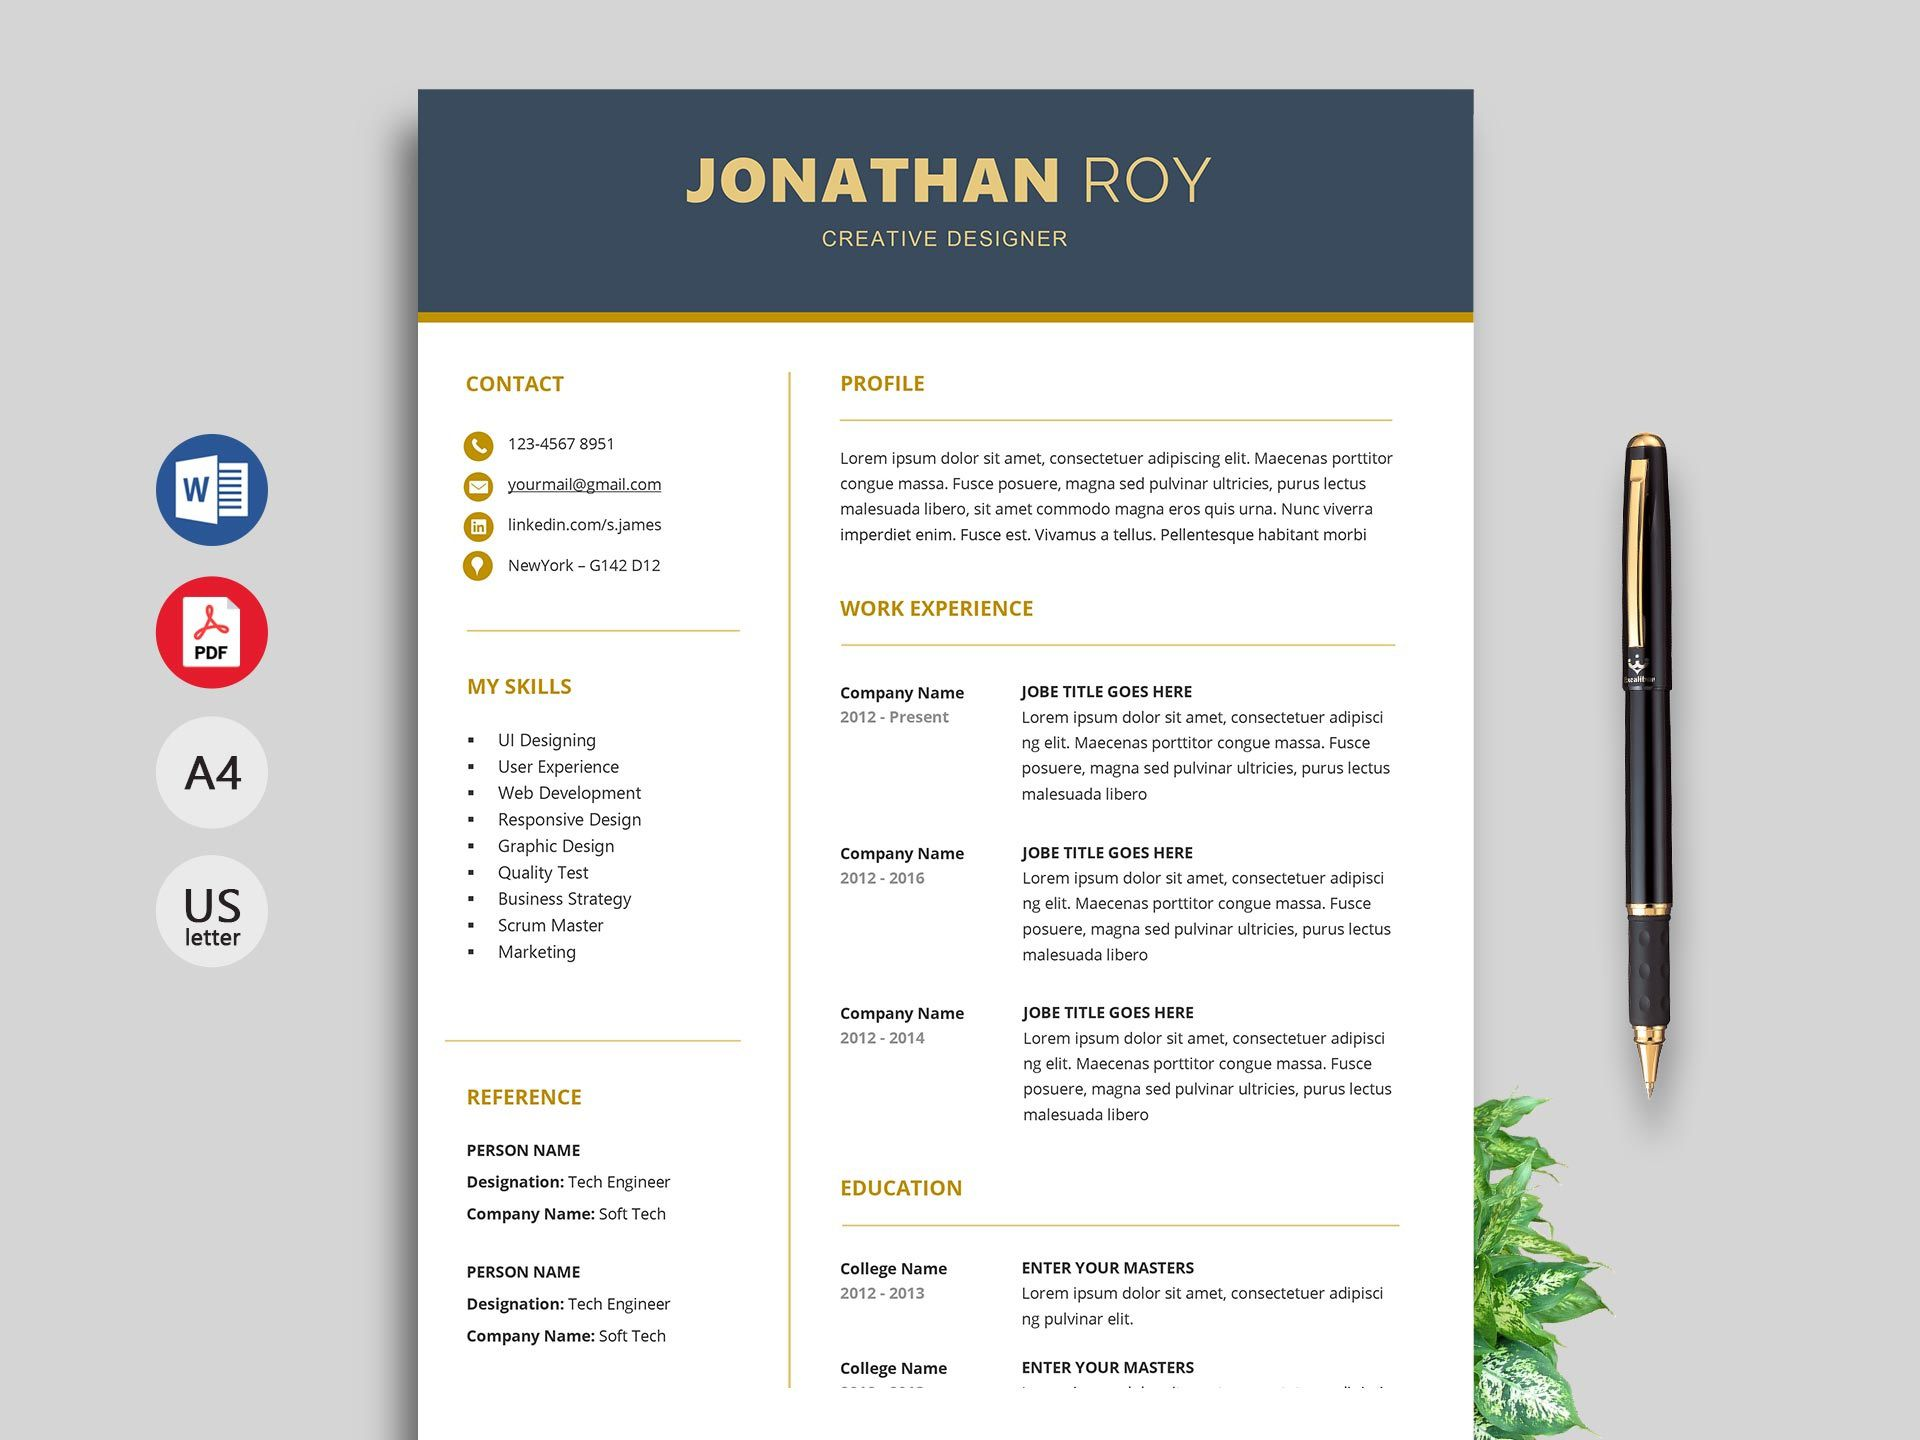 004 Astounding Free Resume Template To Download Sample  Professional Format In M Word 2007 For Civil EngineerFull